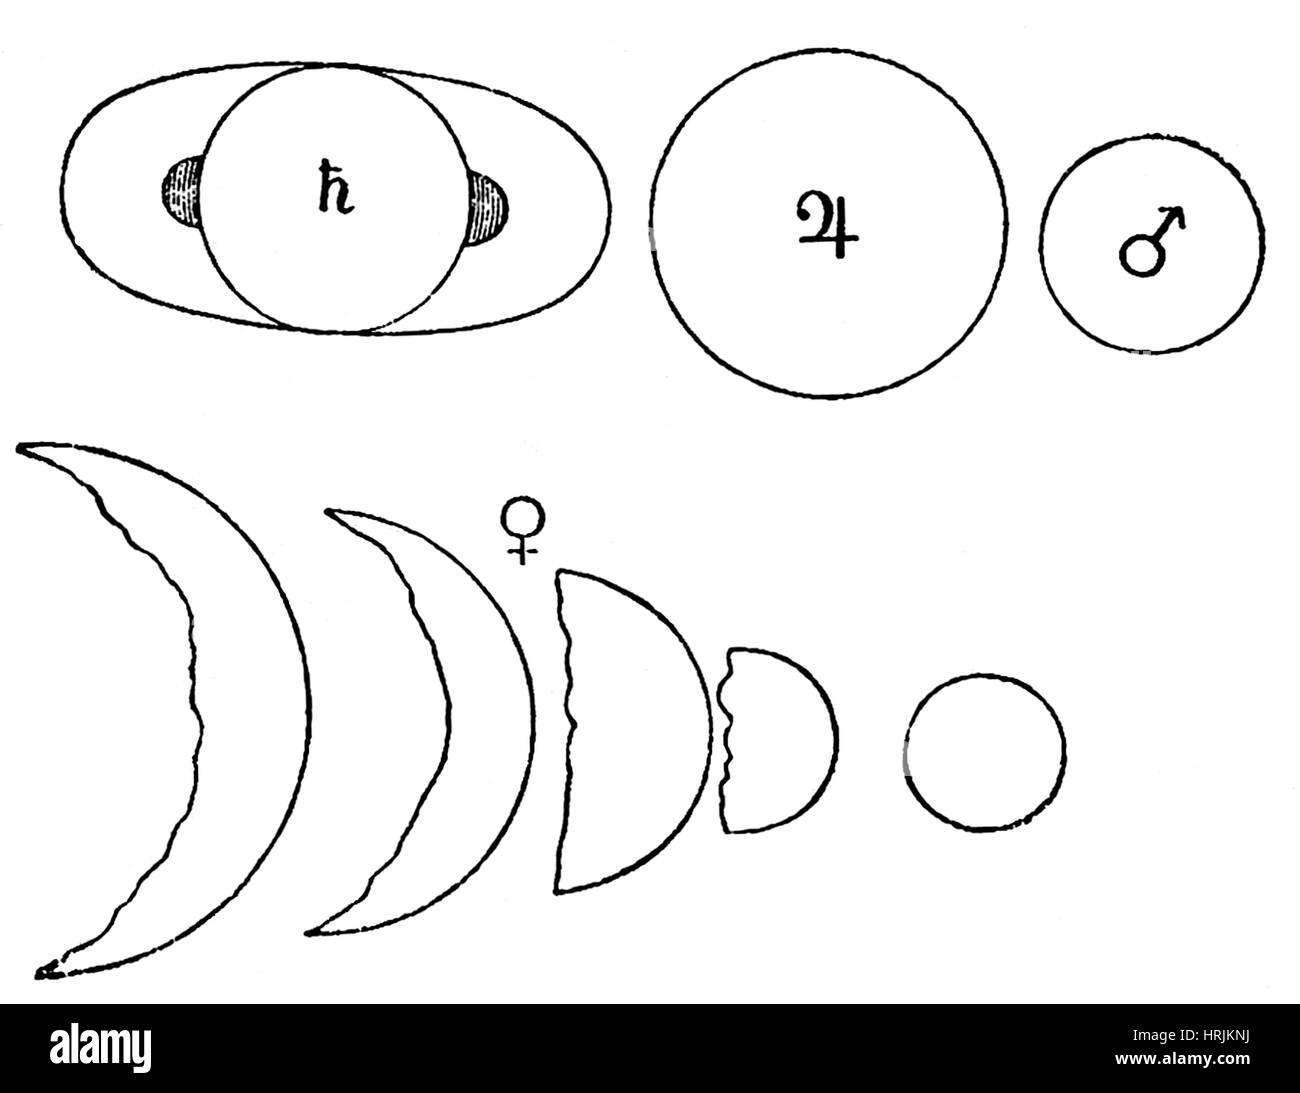 Galileo, Phases of Venus and Other Planets, 1610 - Stock Image